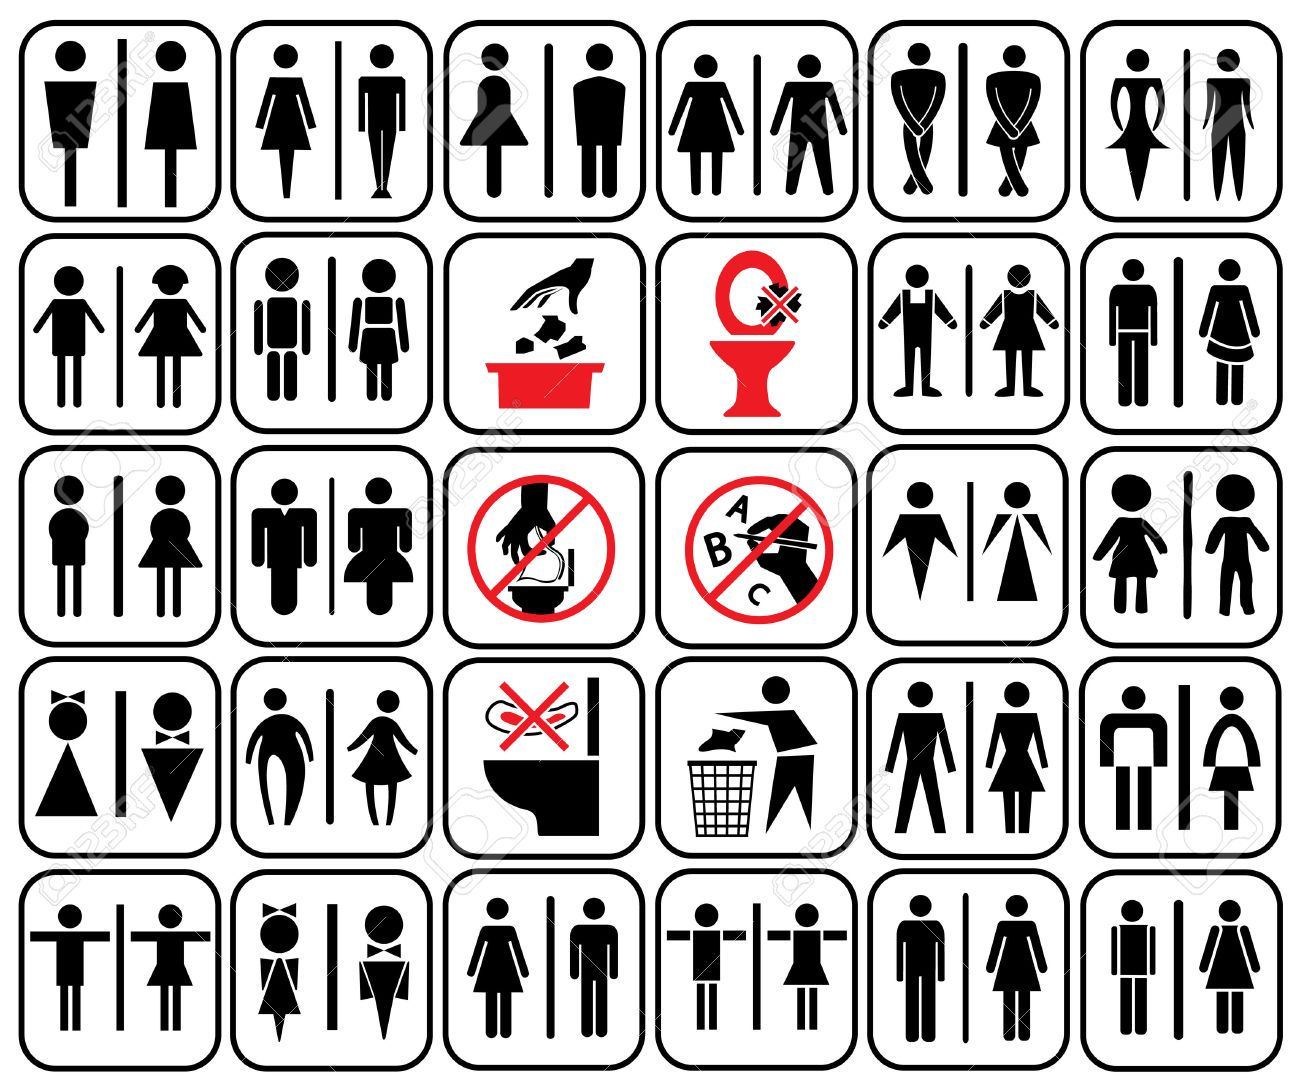 Modern Style Of Toilet Sign With Baby Men Women Pregnant Aged